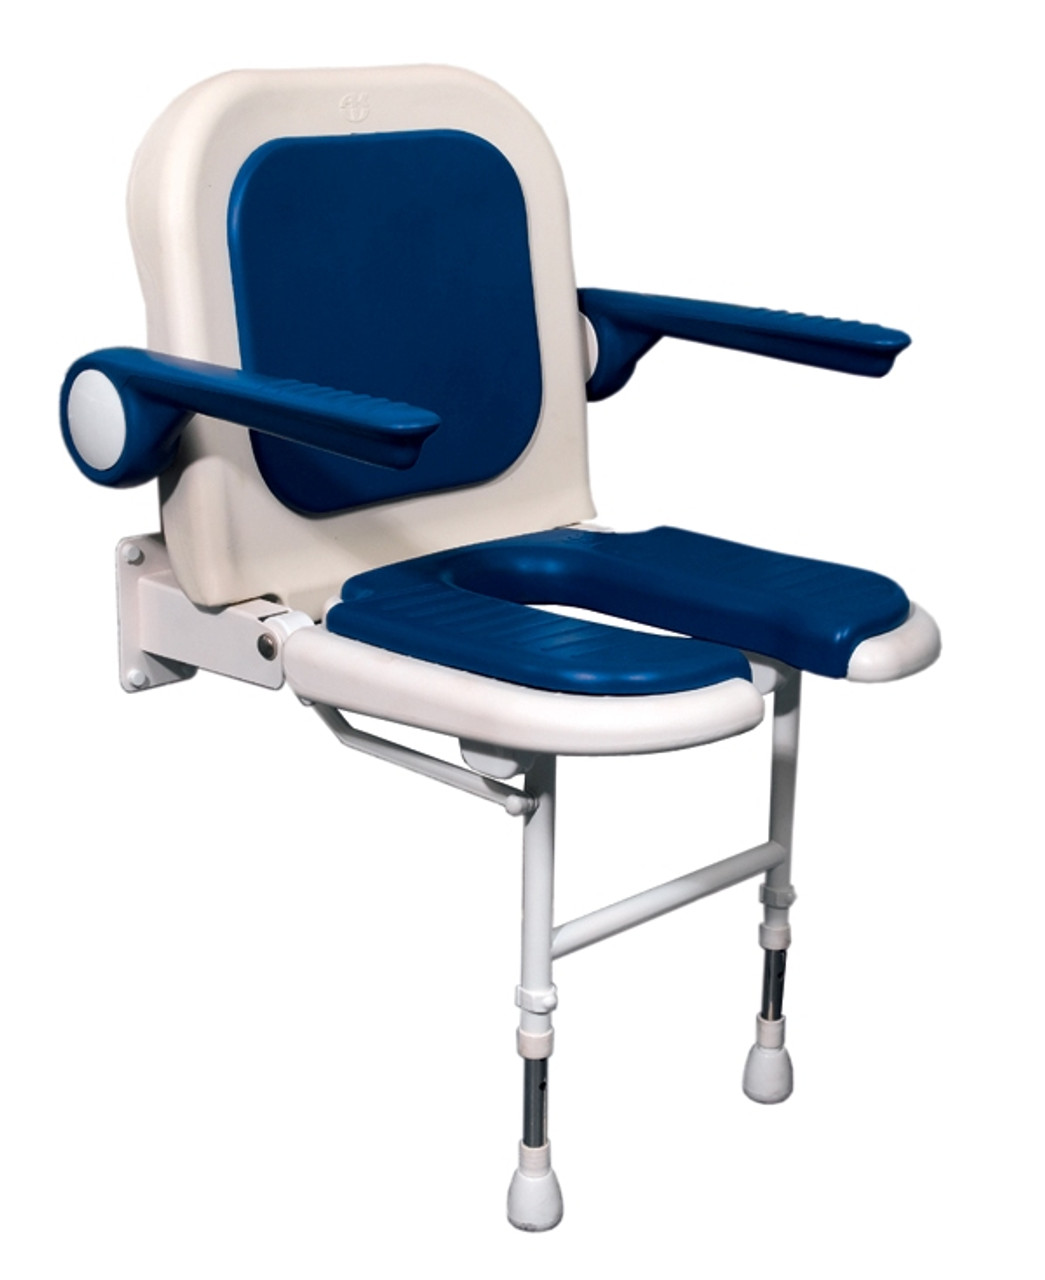 Bariatric Wall Mount Shower Seat With Hygiene Cut Out